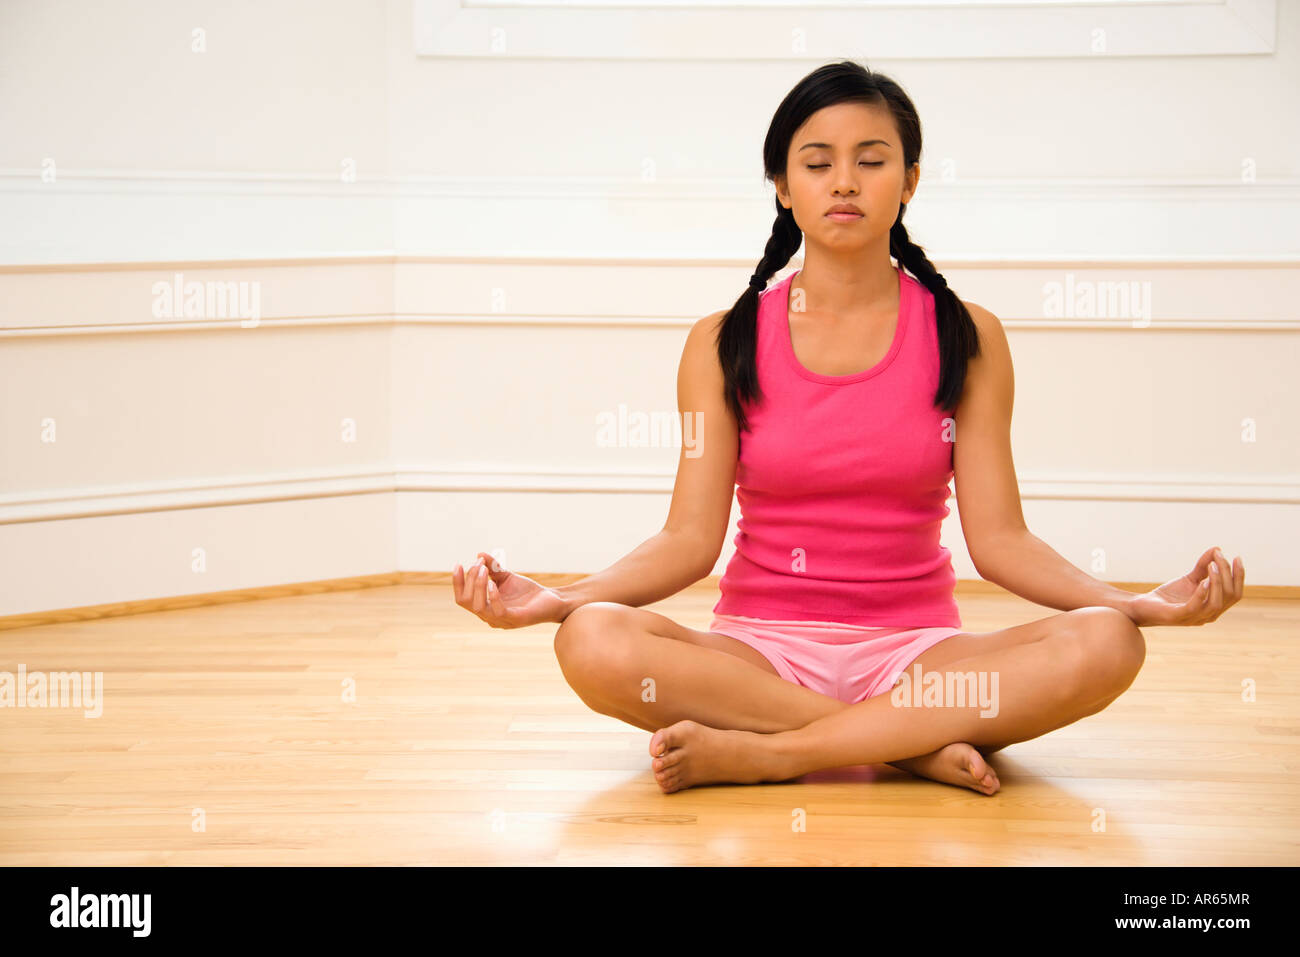 Young woman sitting on floor meditating in yoga lotus pose with legs crossed and eyes closed - Stock Image